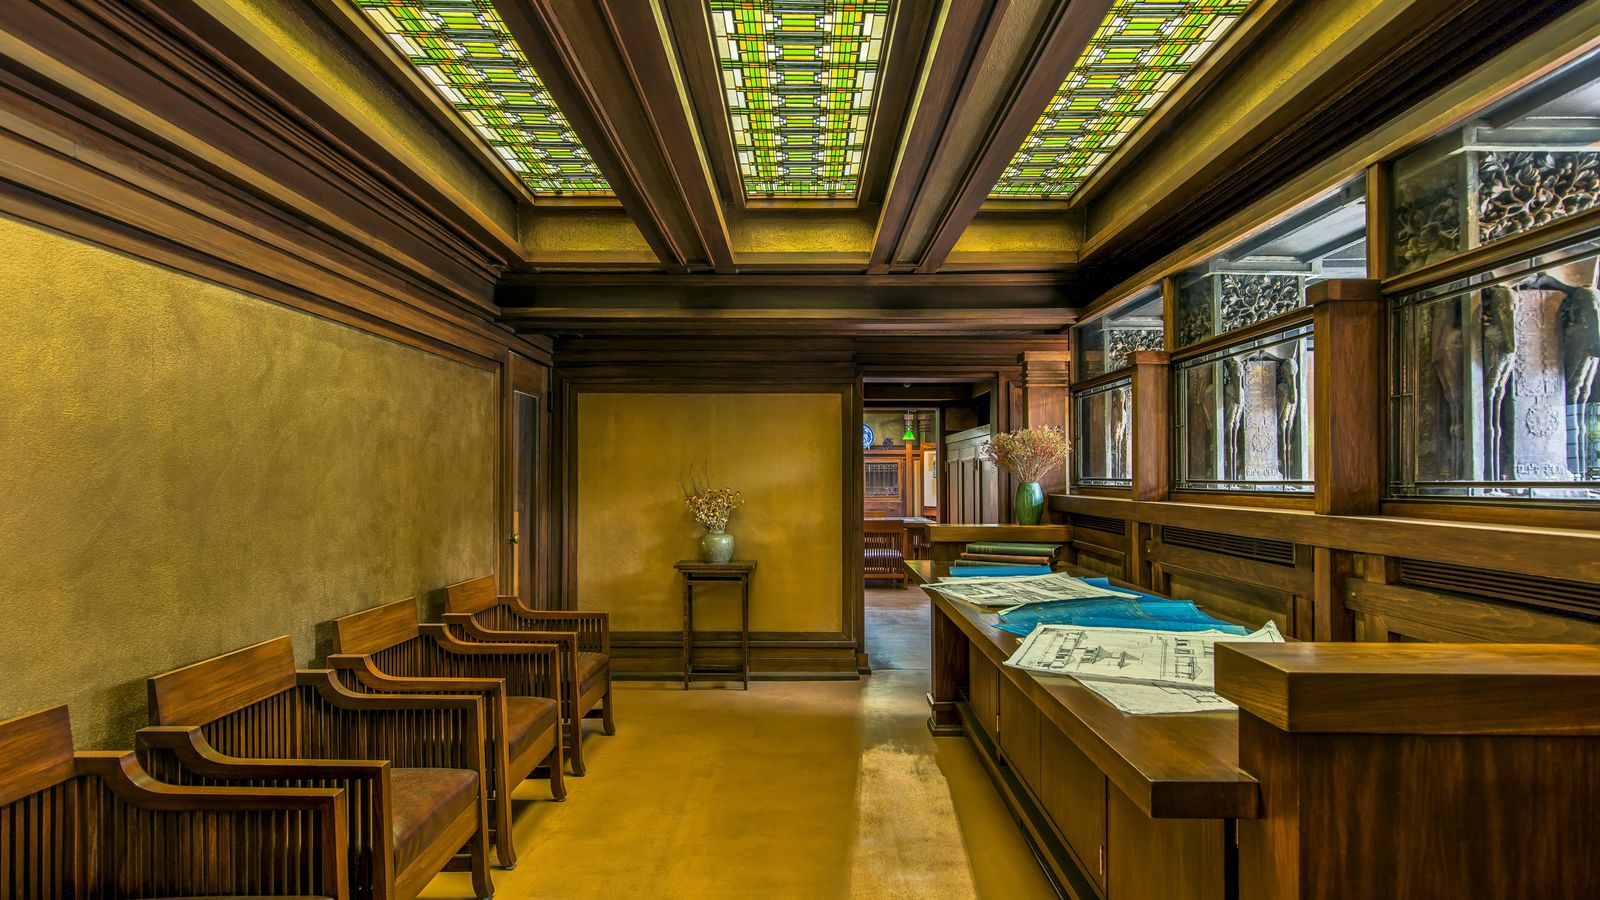 Frank lloyd wright furniture designer curbed - Frank lloyd wright architecture ...